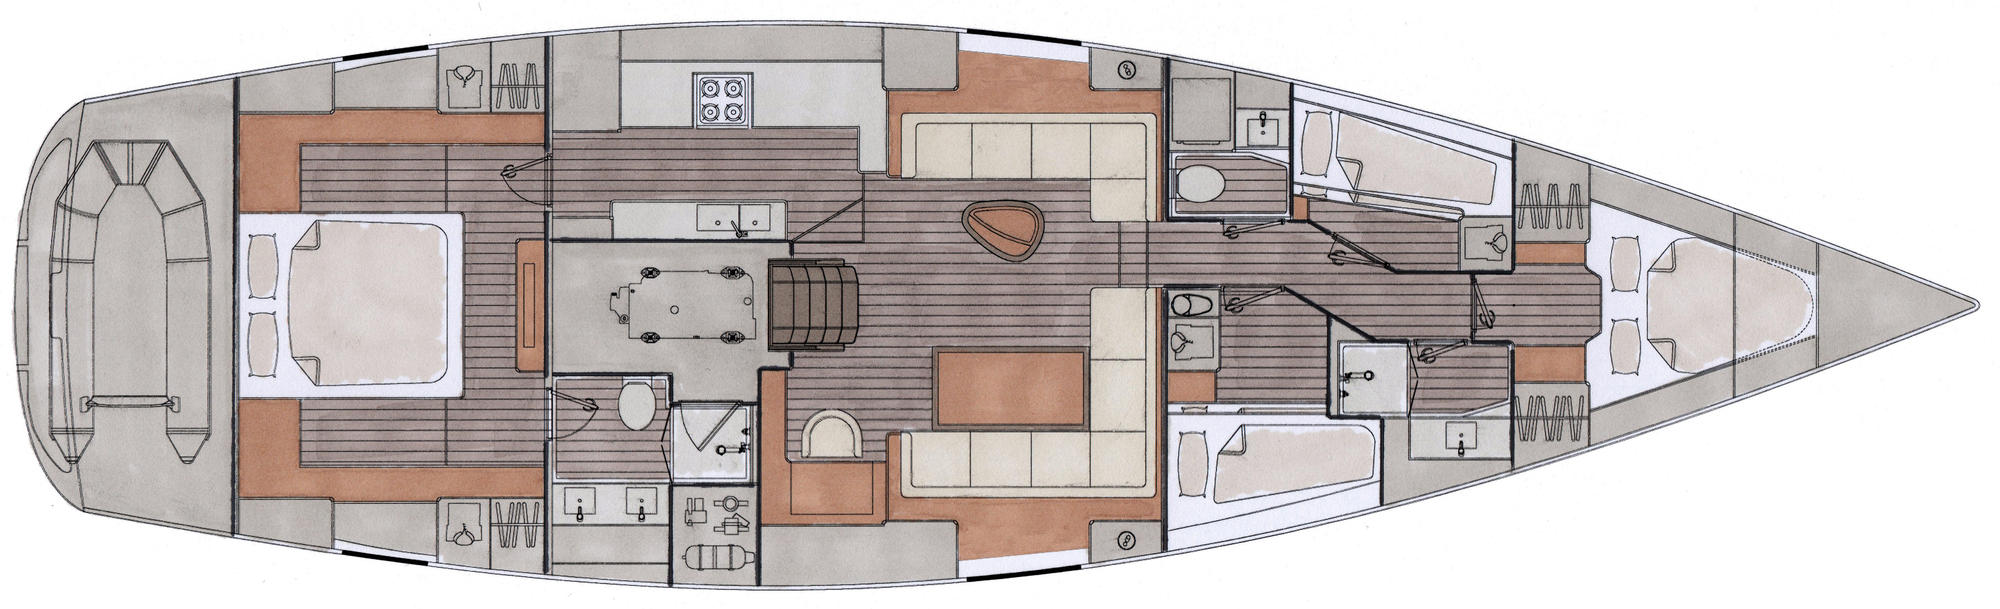 Conyplex Contest 62 CS - contest_62cs_interior_layout_c.jpg